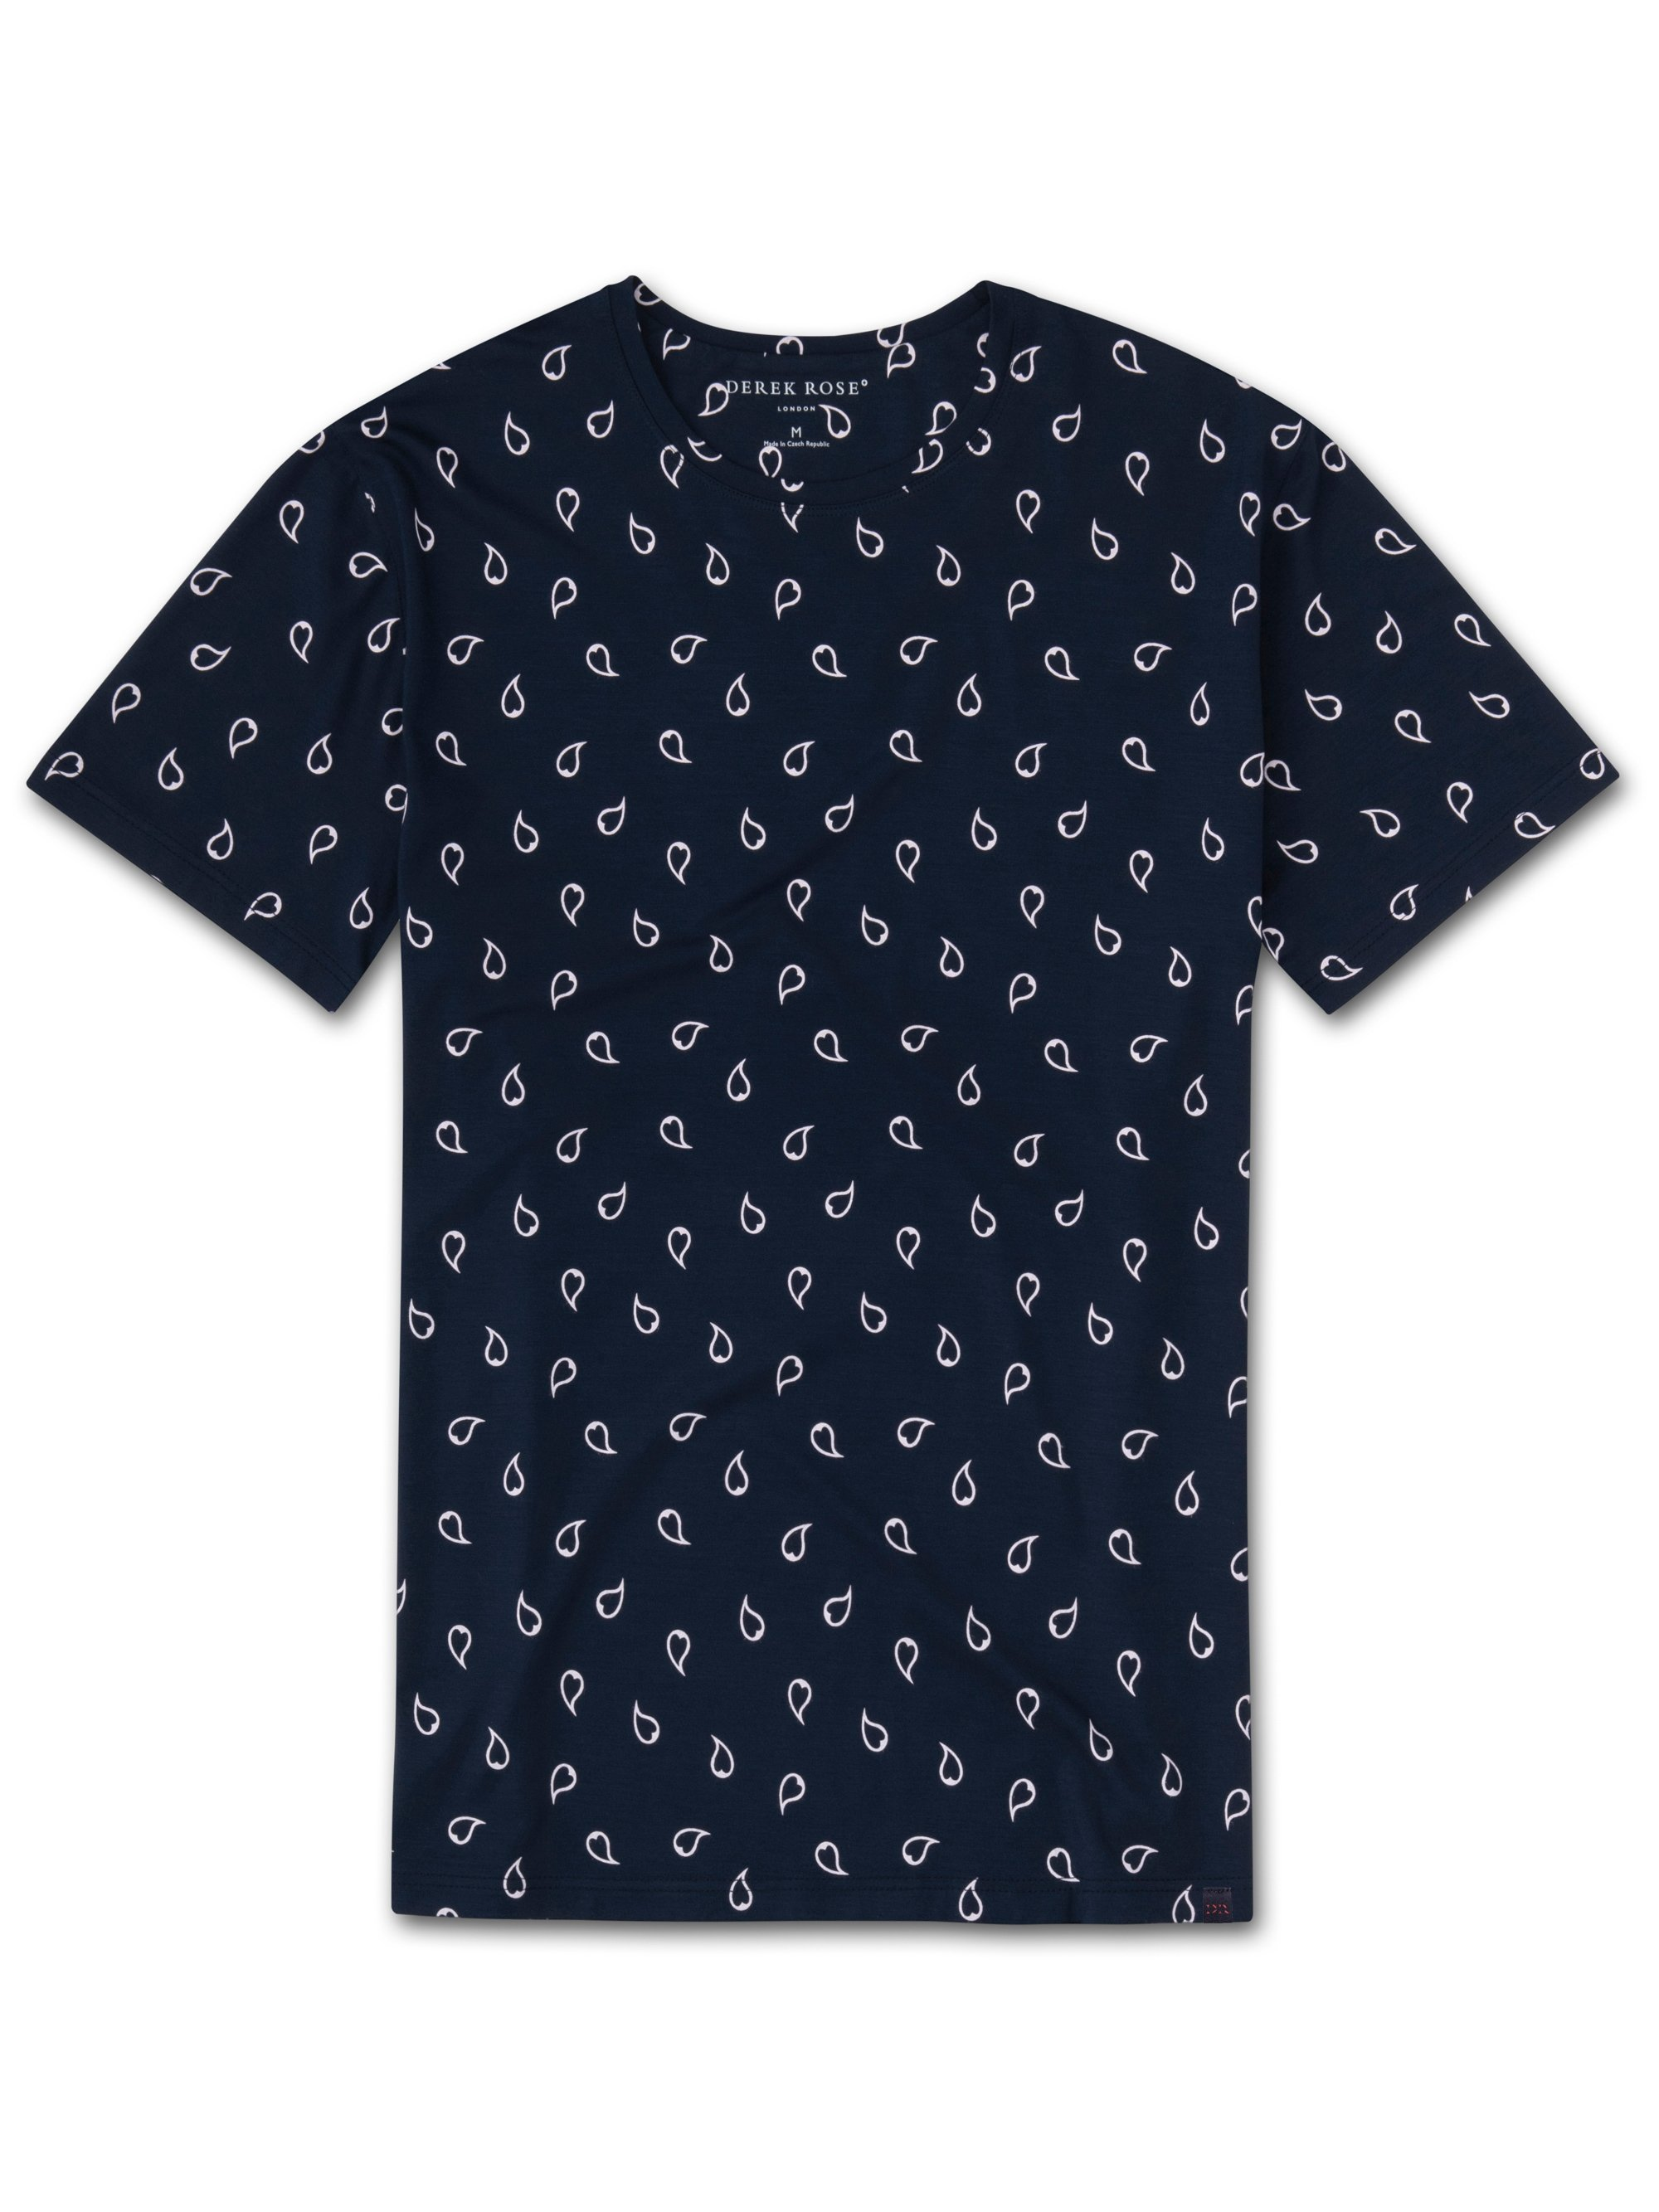 Men's Short Sleeve T-Shirt London Micro Modal Stretch Navy